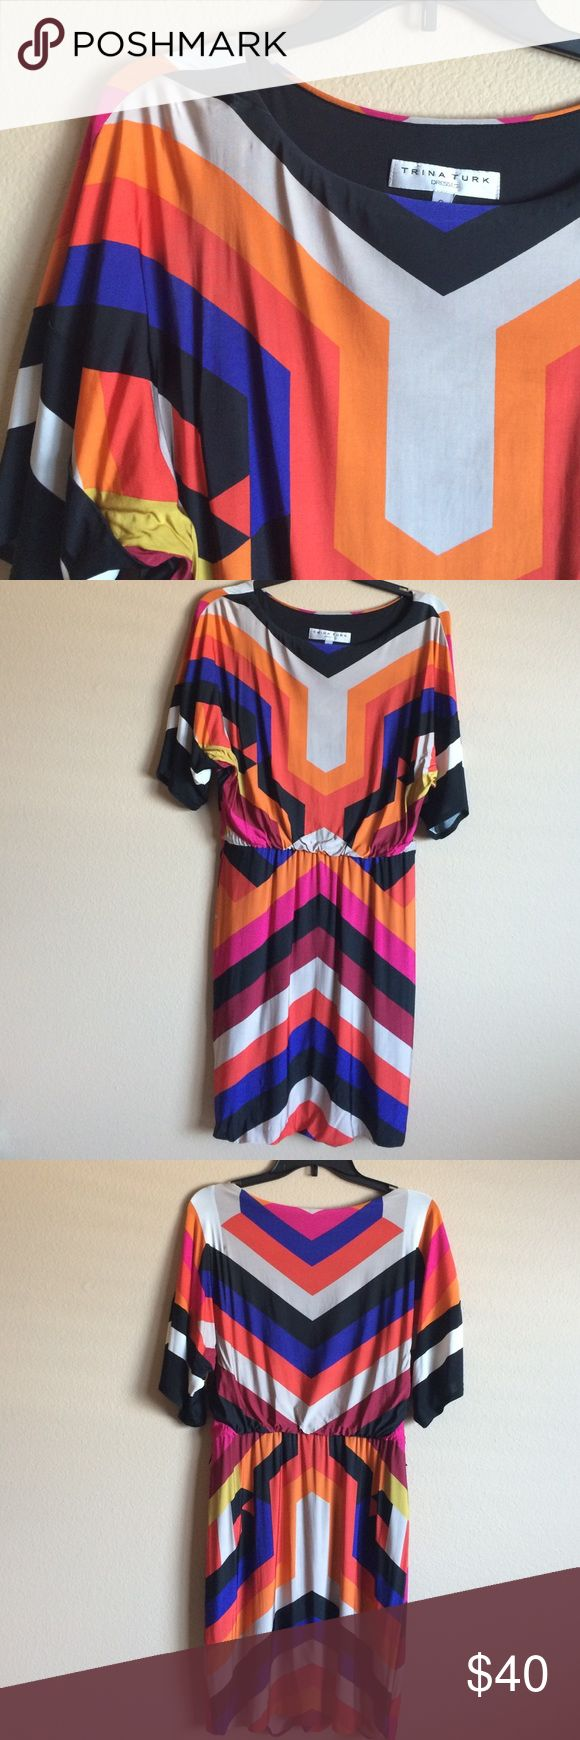 Fabulous Trina Turk Dress Size 6 Fabulous Trina Turk Dress Size 6 fully lined rayon polyester spandex blend Dry Clean Only length 36 1/2 inches Bustline 20in Trina Turk Dresses